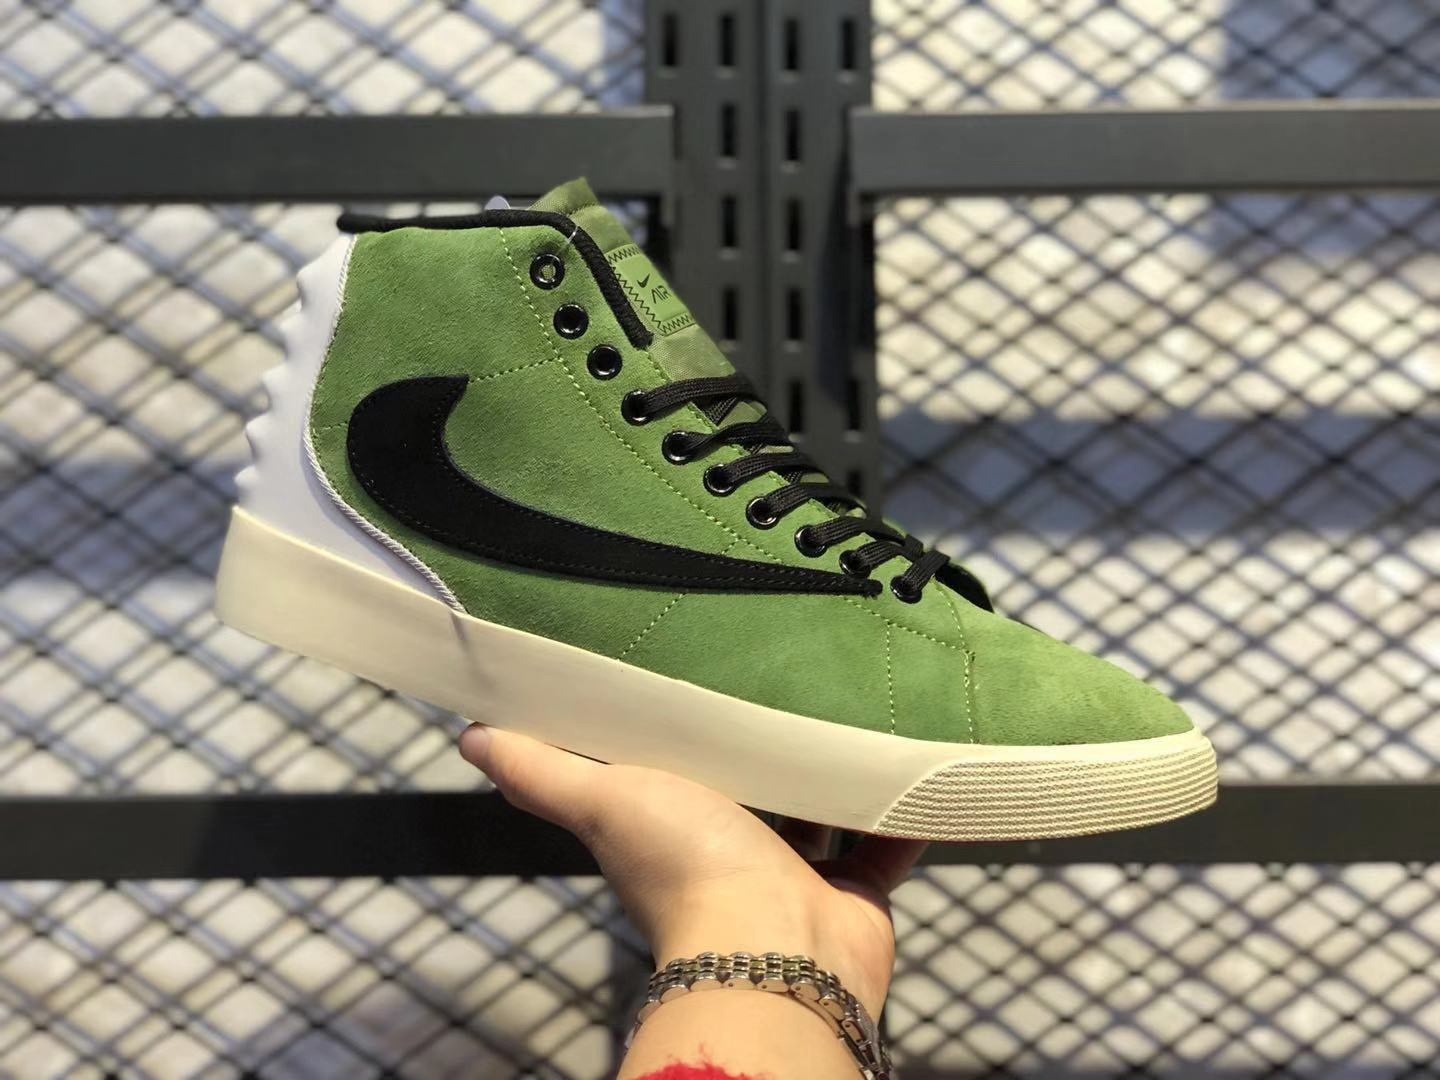 Best Sell Nike Blazer Mid Green/Black-White Lifestyle Shoes UP7799-003